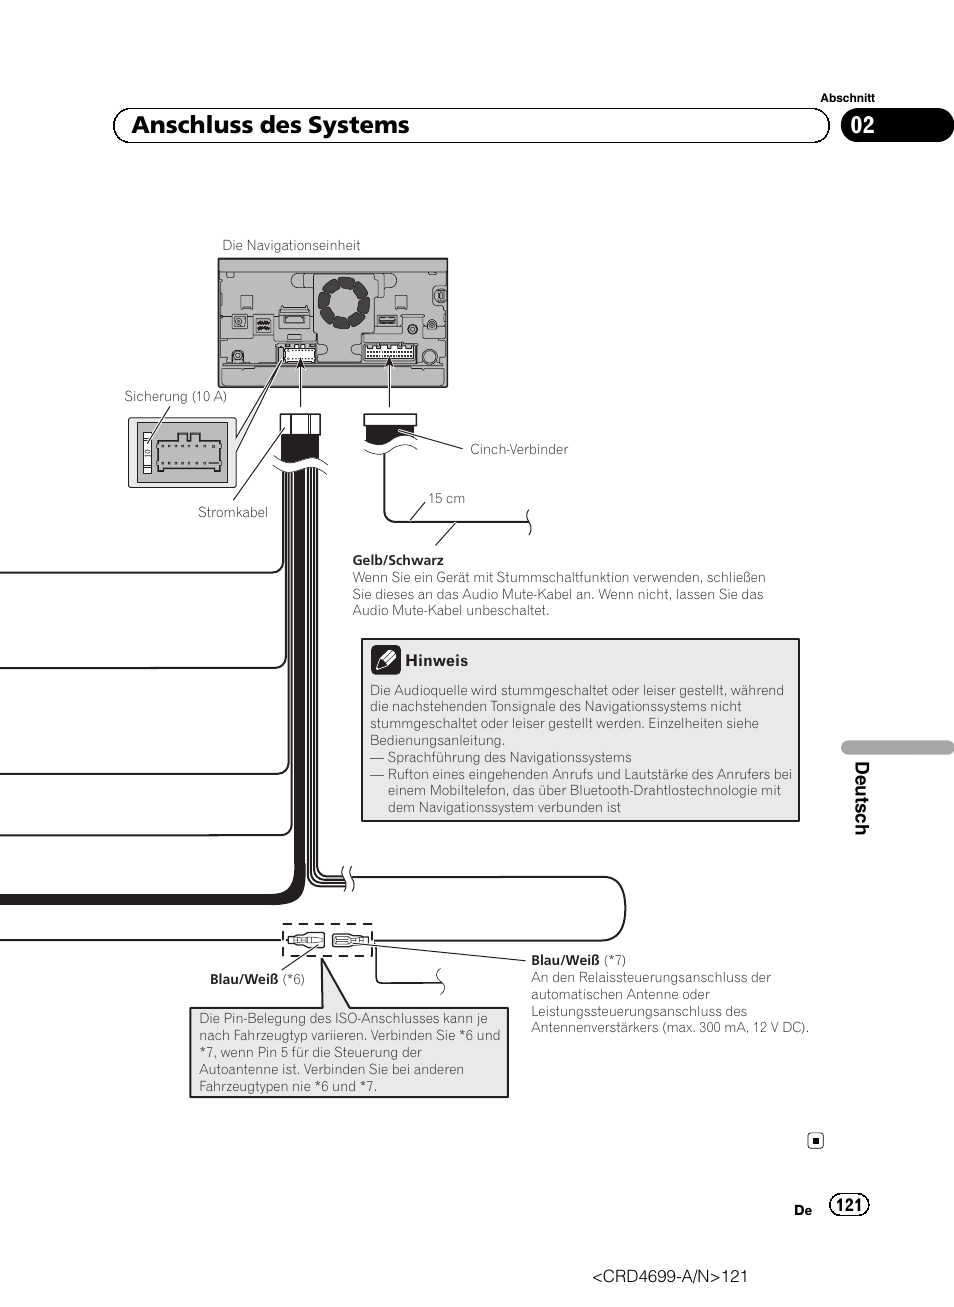 02 anschluss des systems | Pioneer AVIC-F50BT User Manual | Page 121 ...